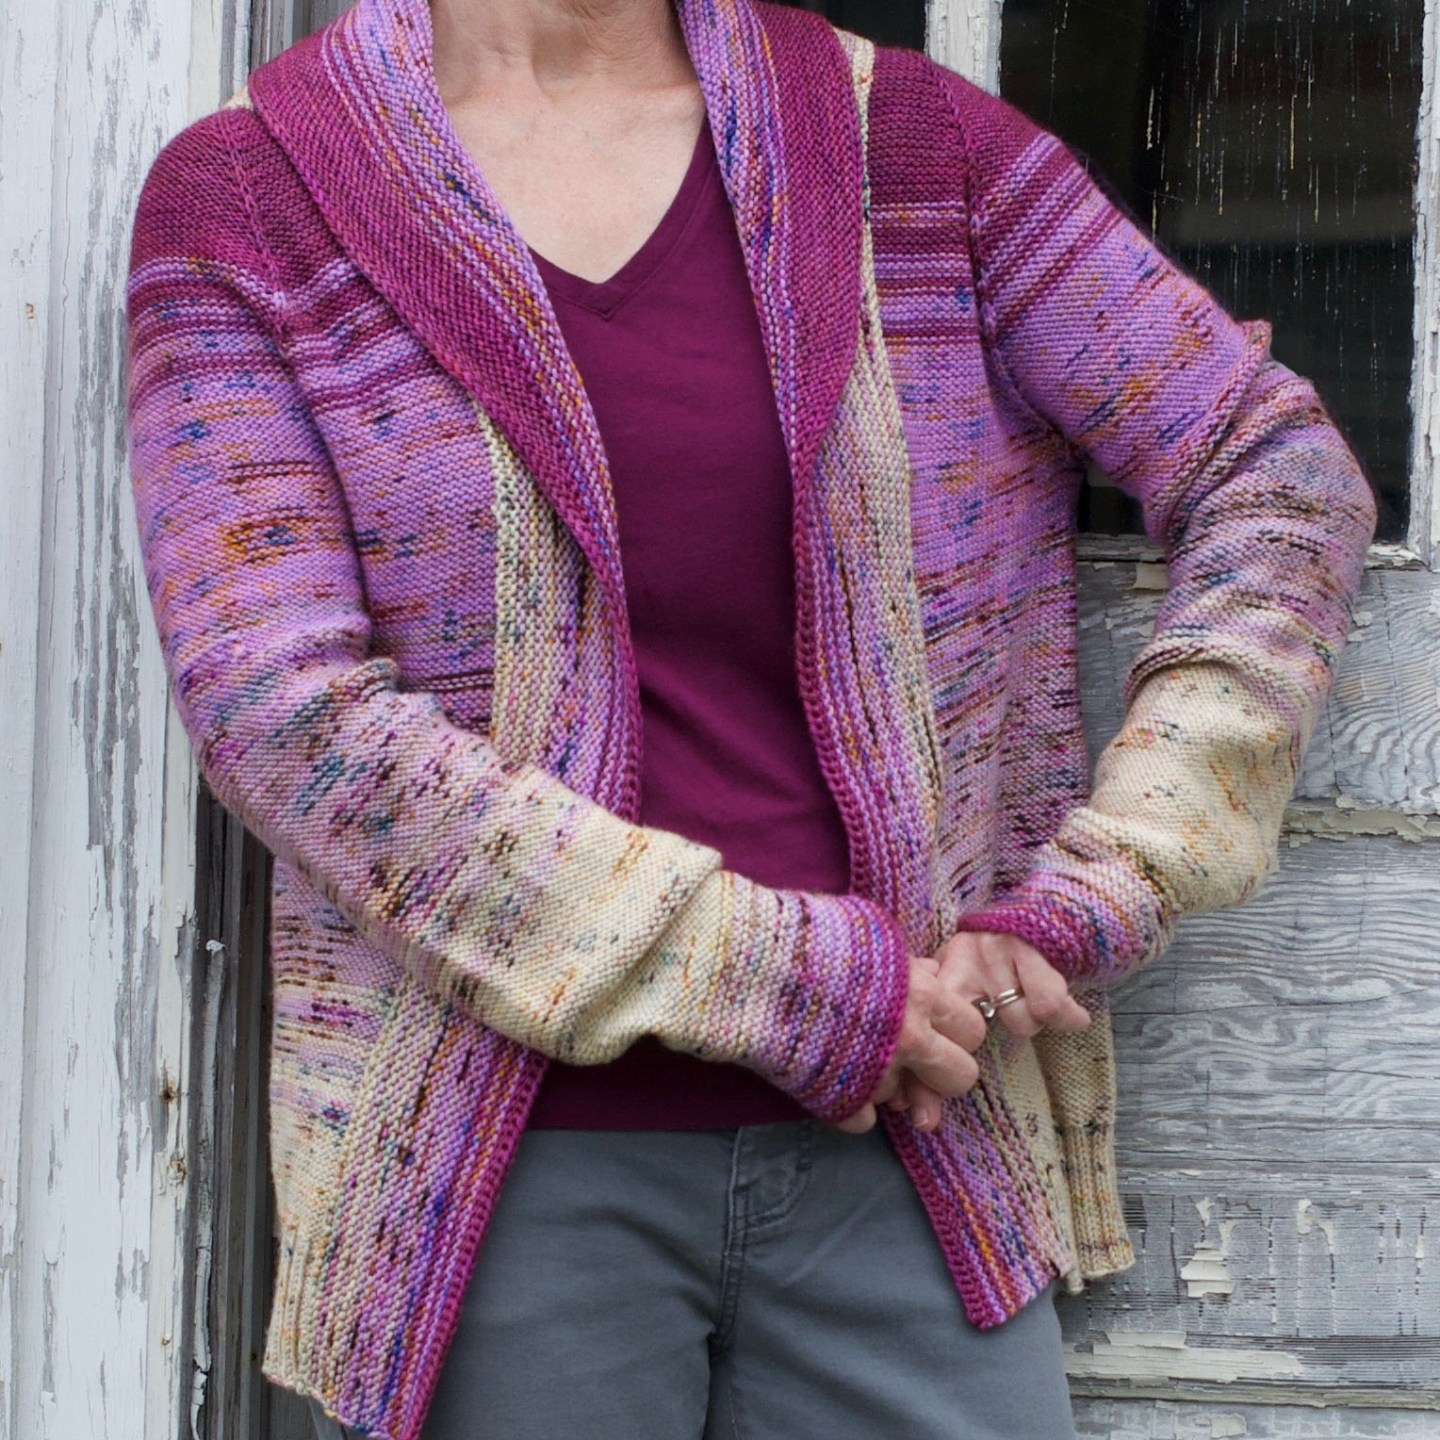 Favorite Cardi So Far!